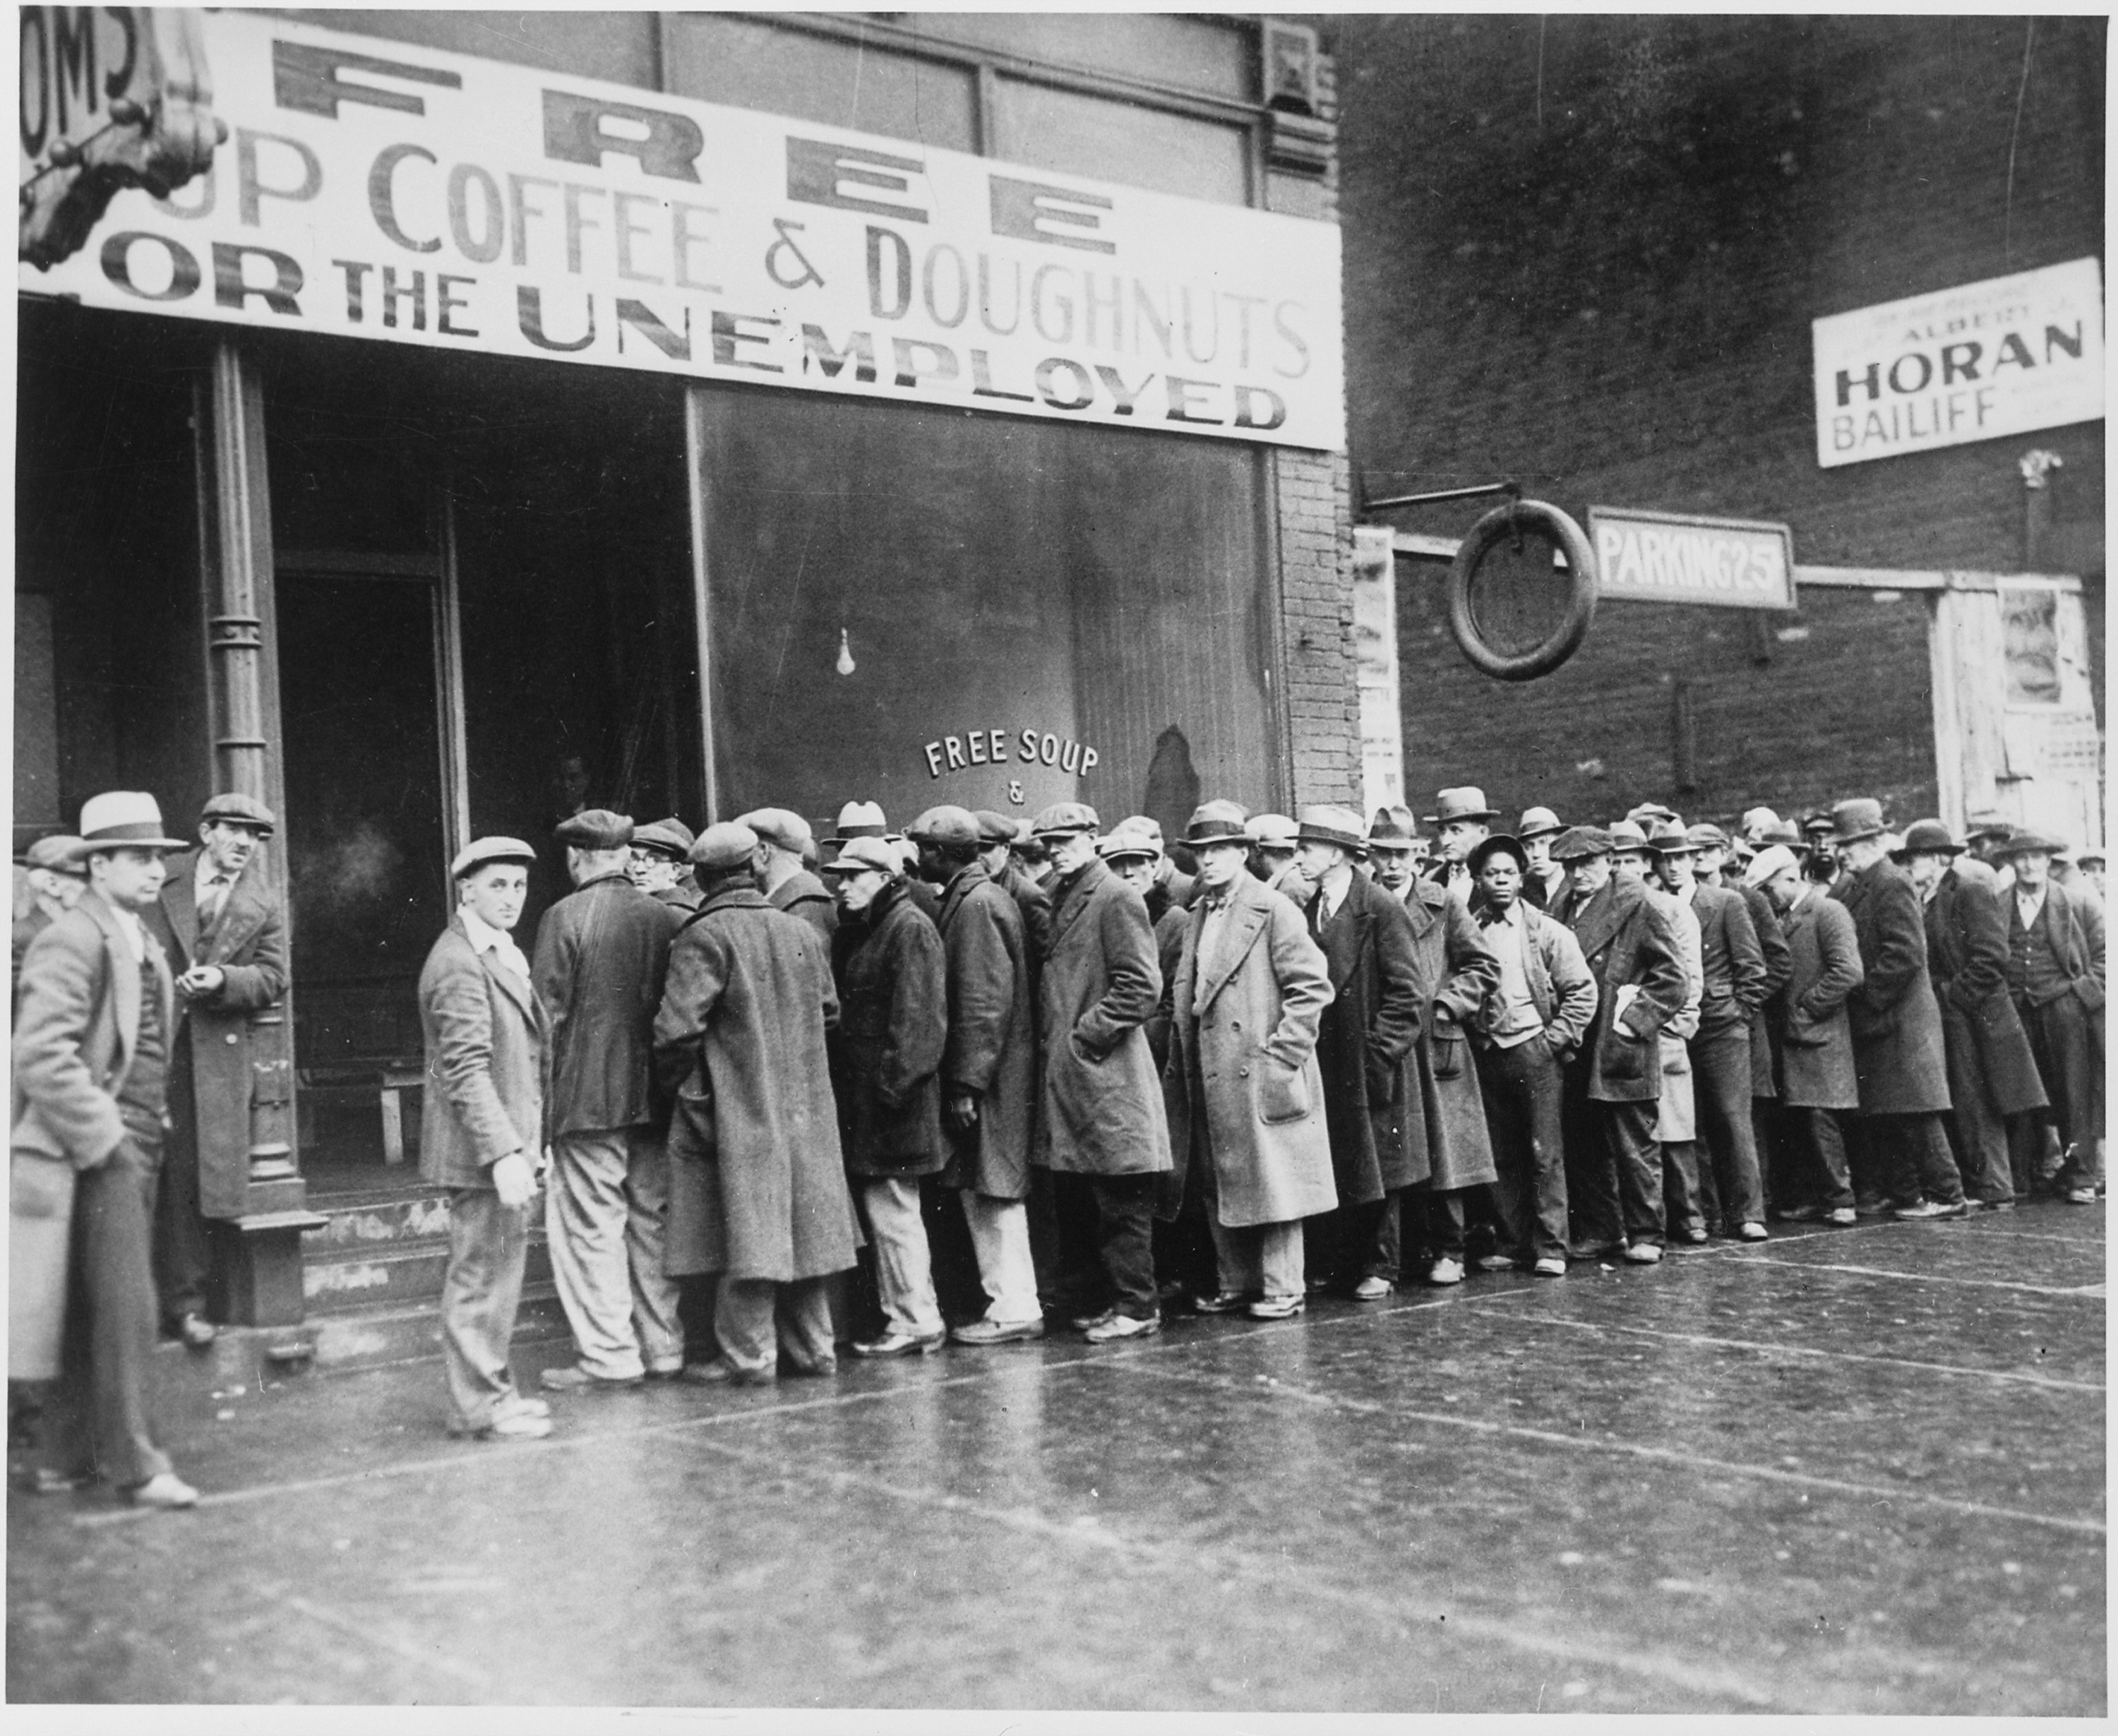 the beginning of the great depression in the united states A common fallacy is that the great depression was ended by the explosive spending of world war ii but world war ii actually institutionalized the sharp decline in the standard of living caused by the depression the depression was actually ended, and prosperity restored, by the sharp reductions in.